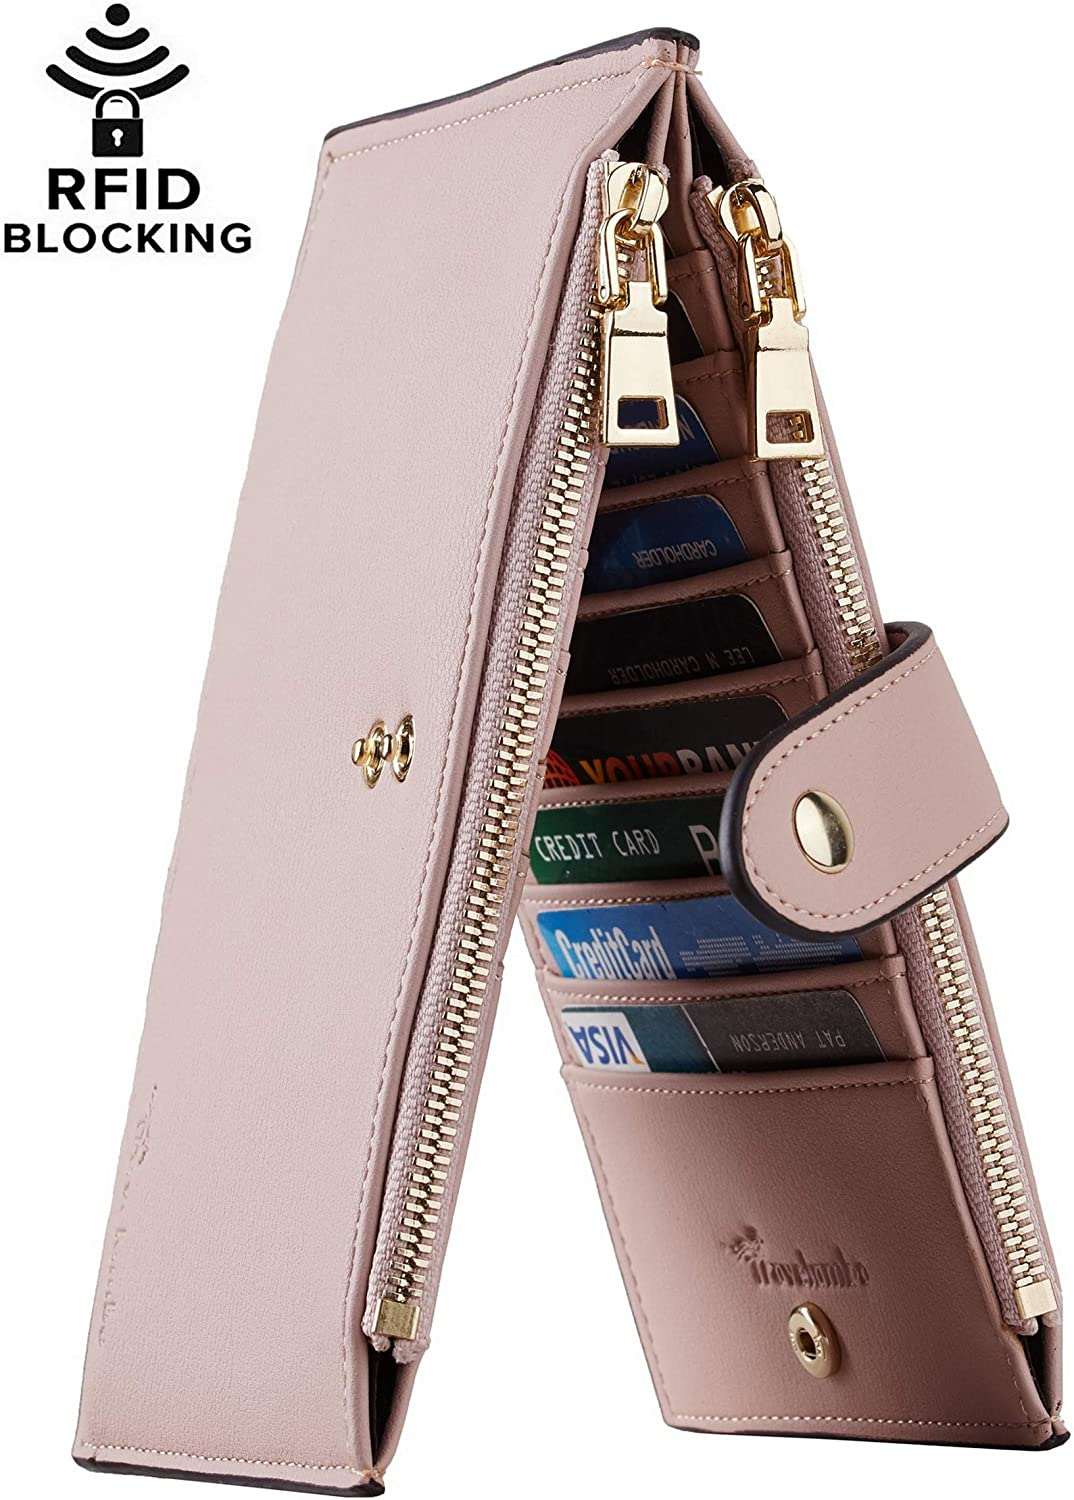 Travelambo Womens Walllet RFID Blocking Bifold Multi Card Case Wallet with Zipper Pocket (Chelsea Pink Champagne)